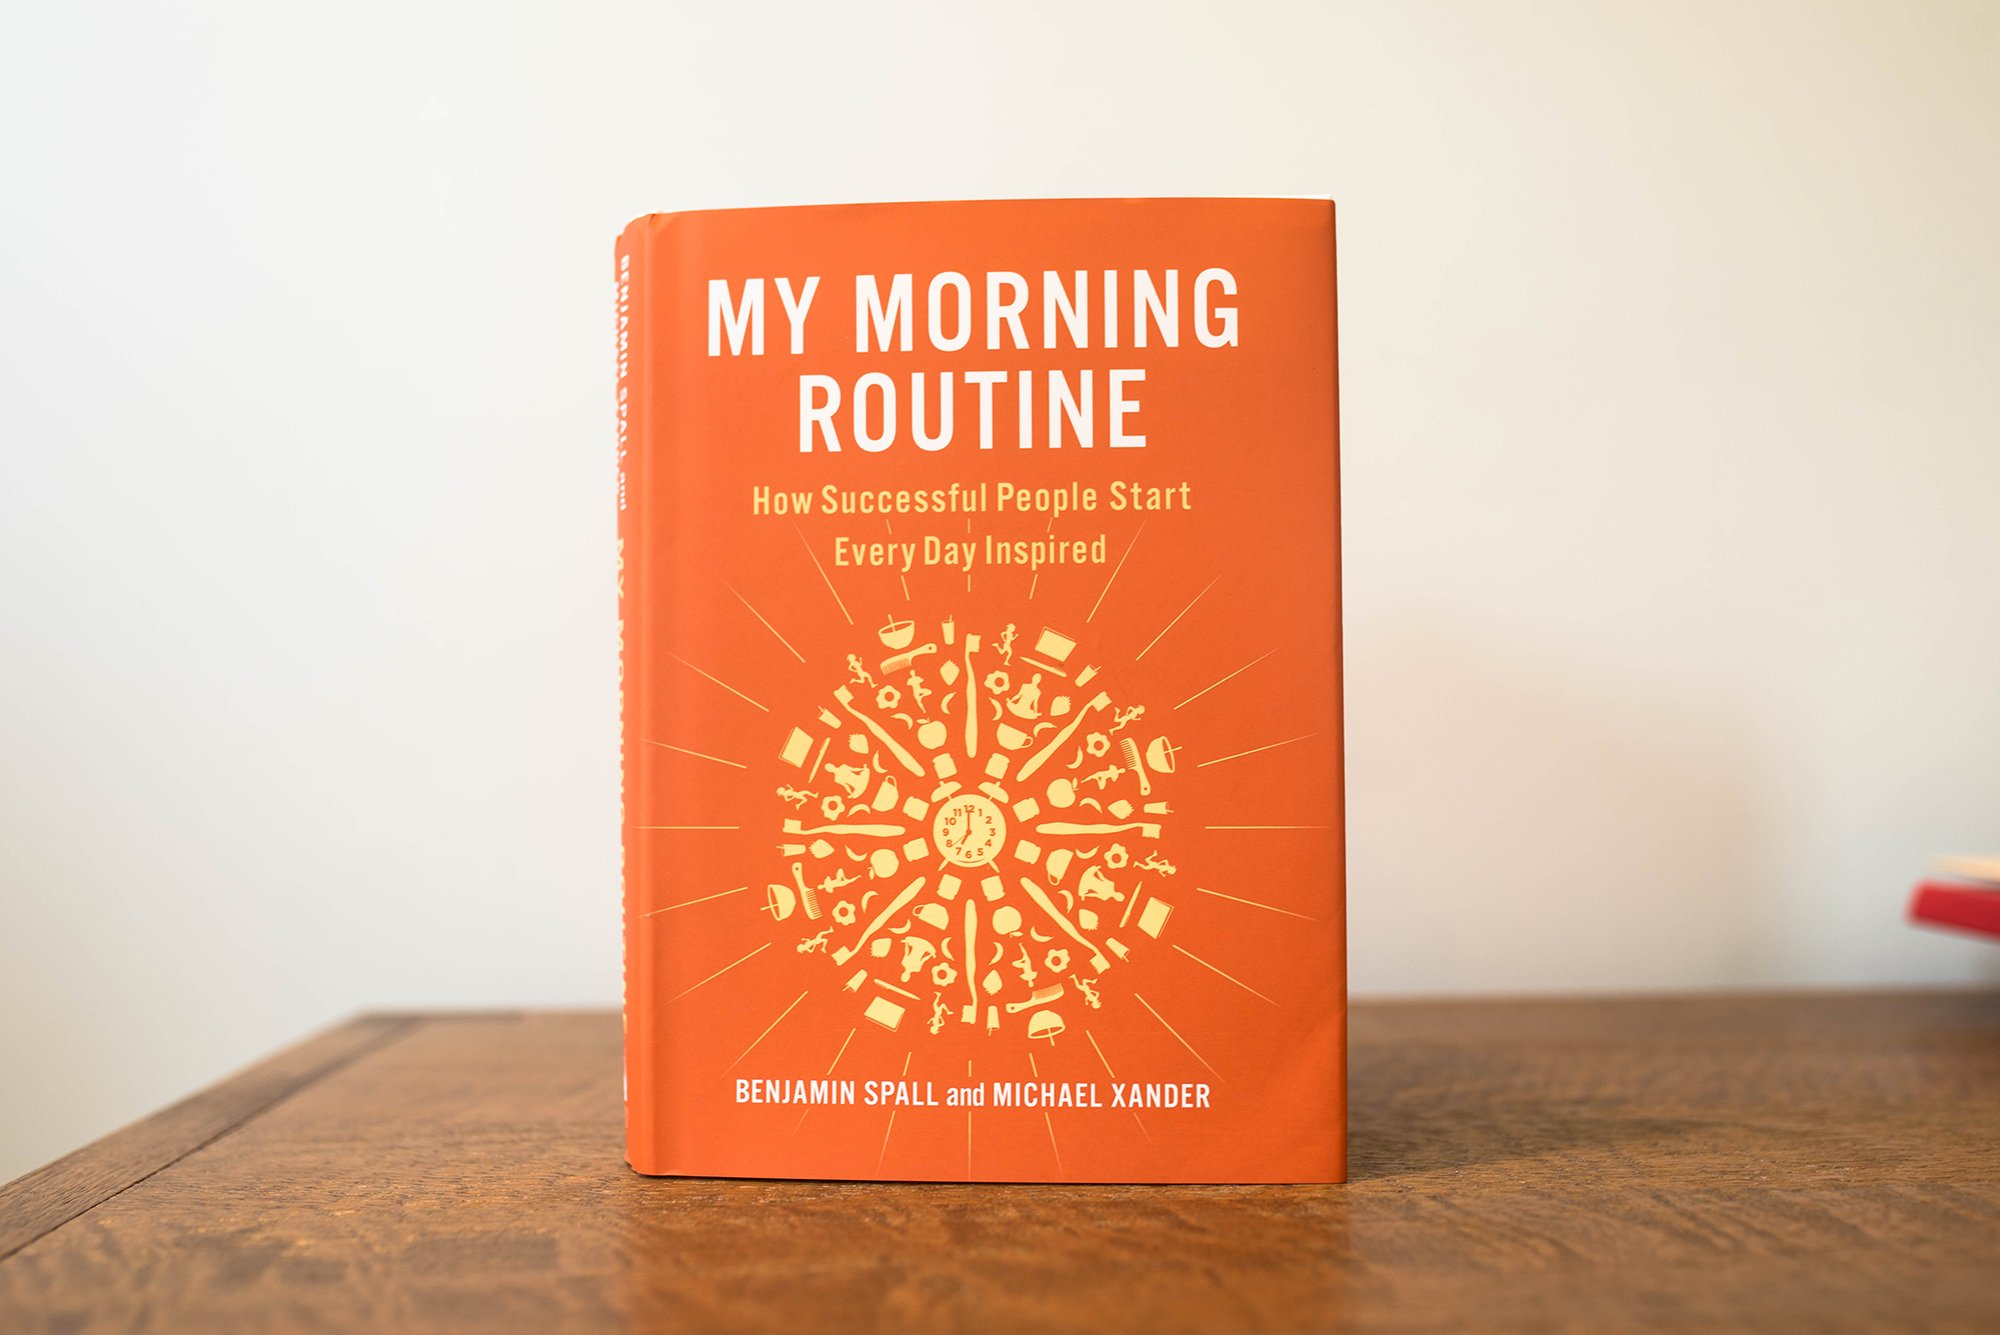 Cover Middle - My Morning Routine Book Review - Benjamin Spall - Michael Xander - FilterGrade